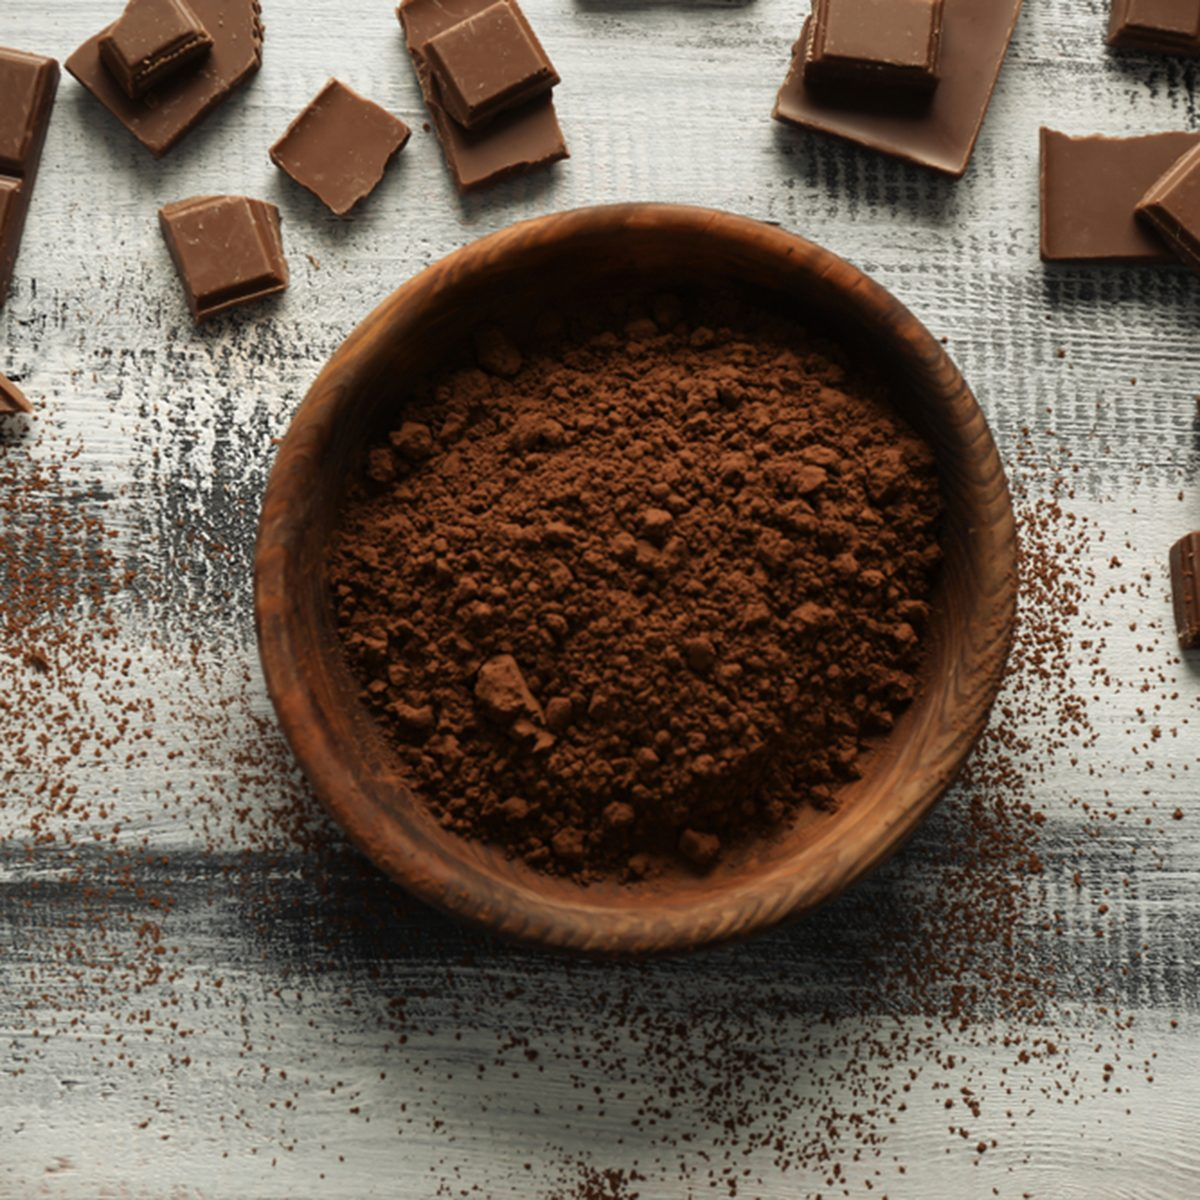 Bowl with cocoa powder and tasty chocolate on wooden background